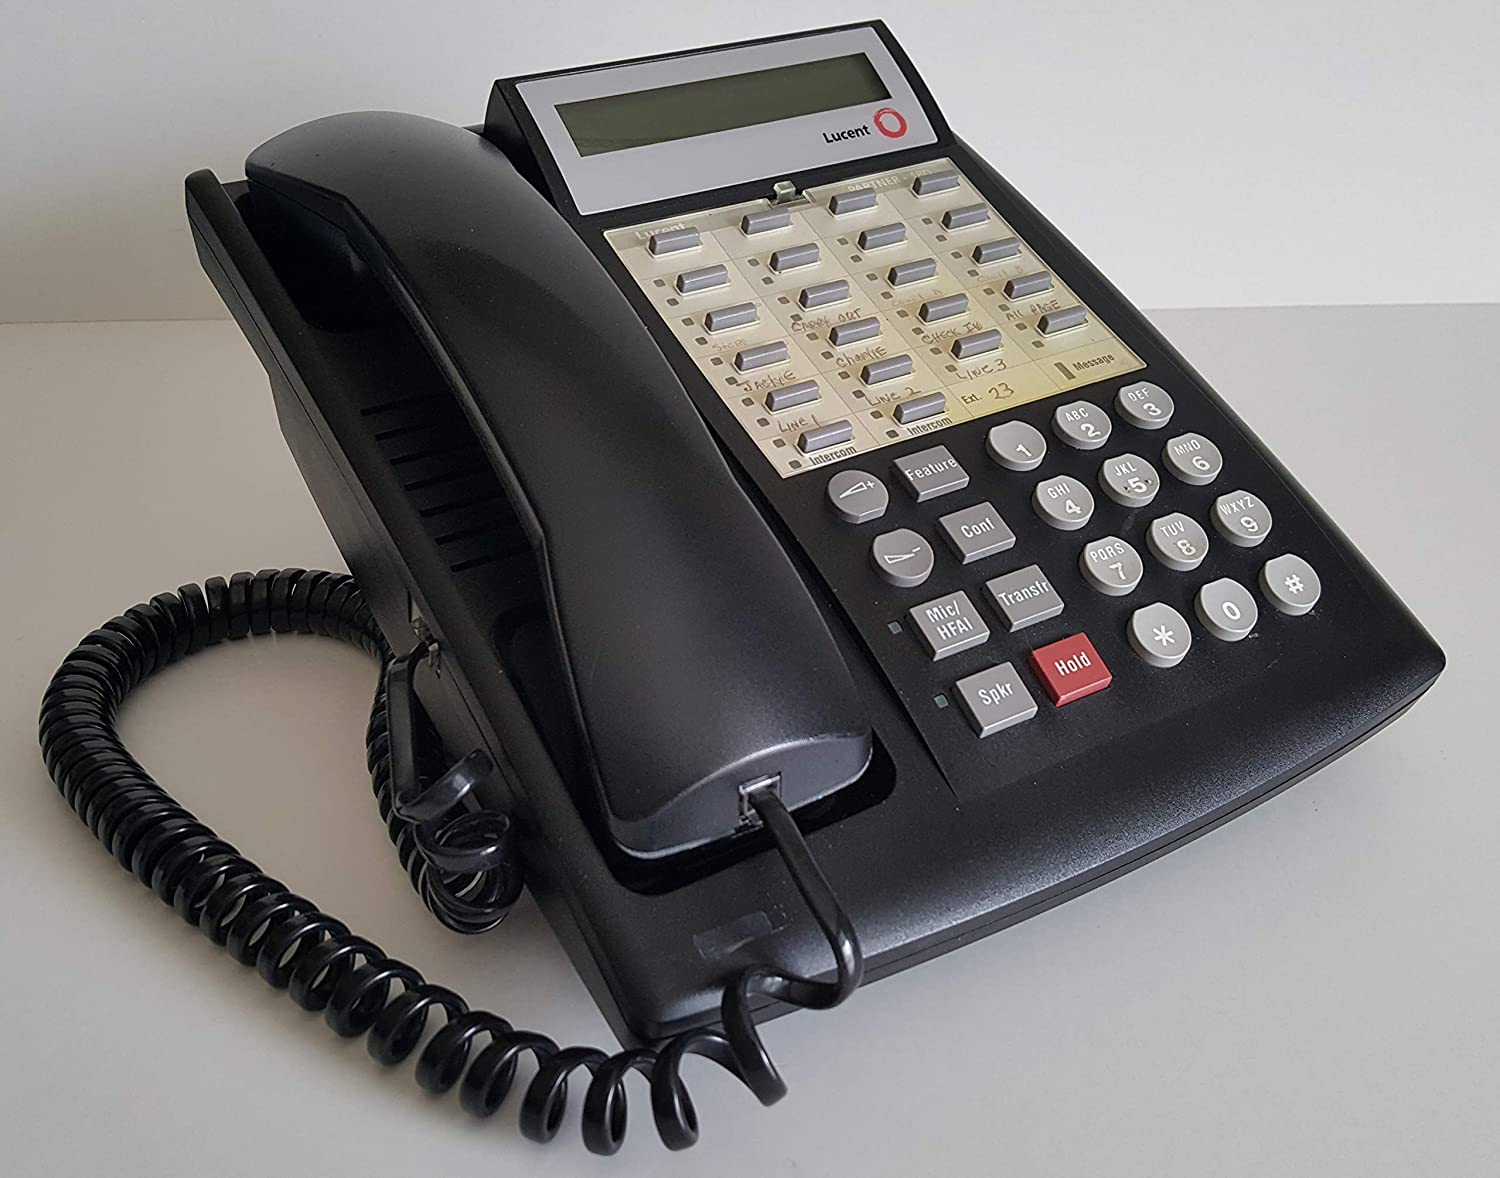 Lucent Avaya Max 68% OFF Partner 18D Euro Max 70% OFF with 108236712 Telephone Black Bas